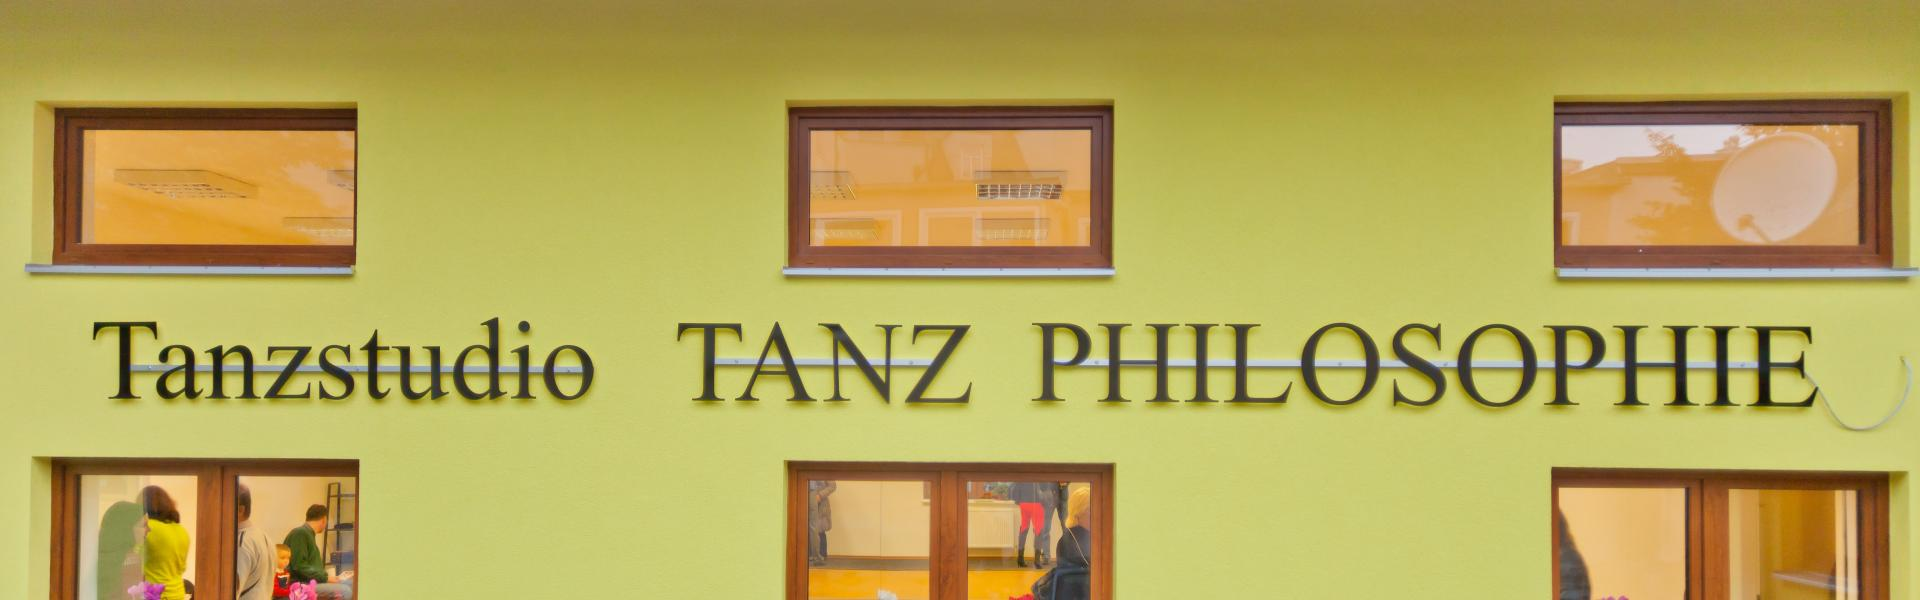 Tanzstudio Tanz Philosophie cover